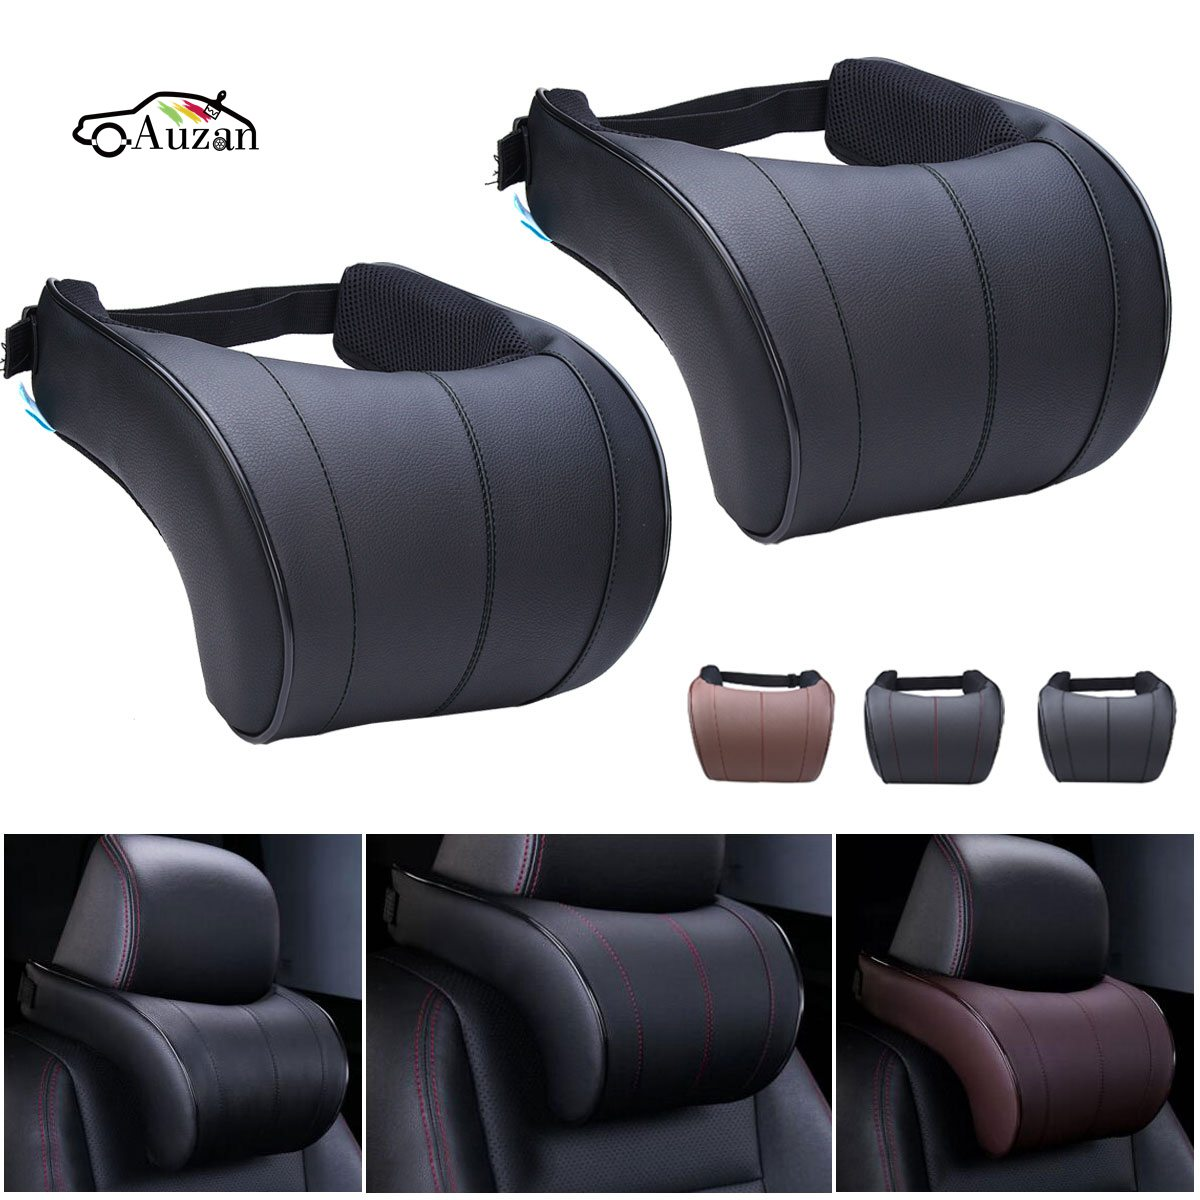 2019 PU Leather Auto Car Neck Pillow Memory Foam Pillows Neck Rest Seat Headrest Cushion Pad 3 Colors High Quality